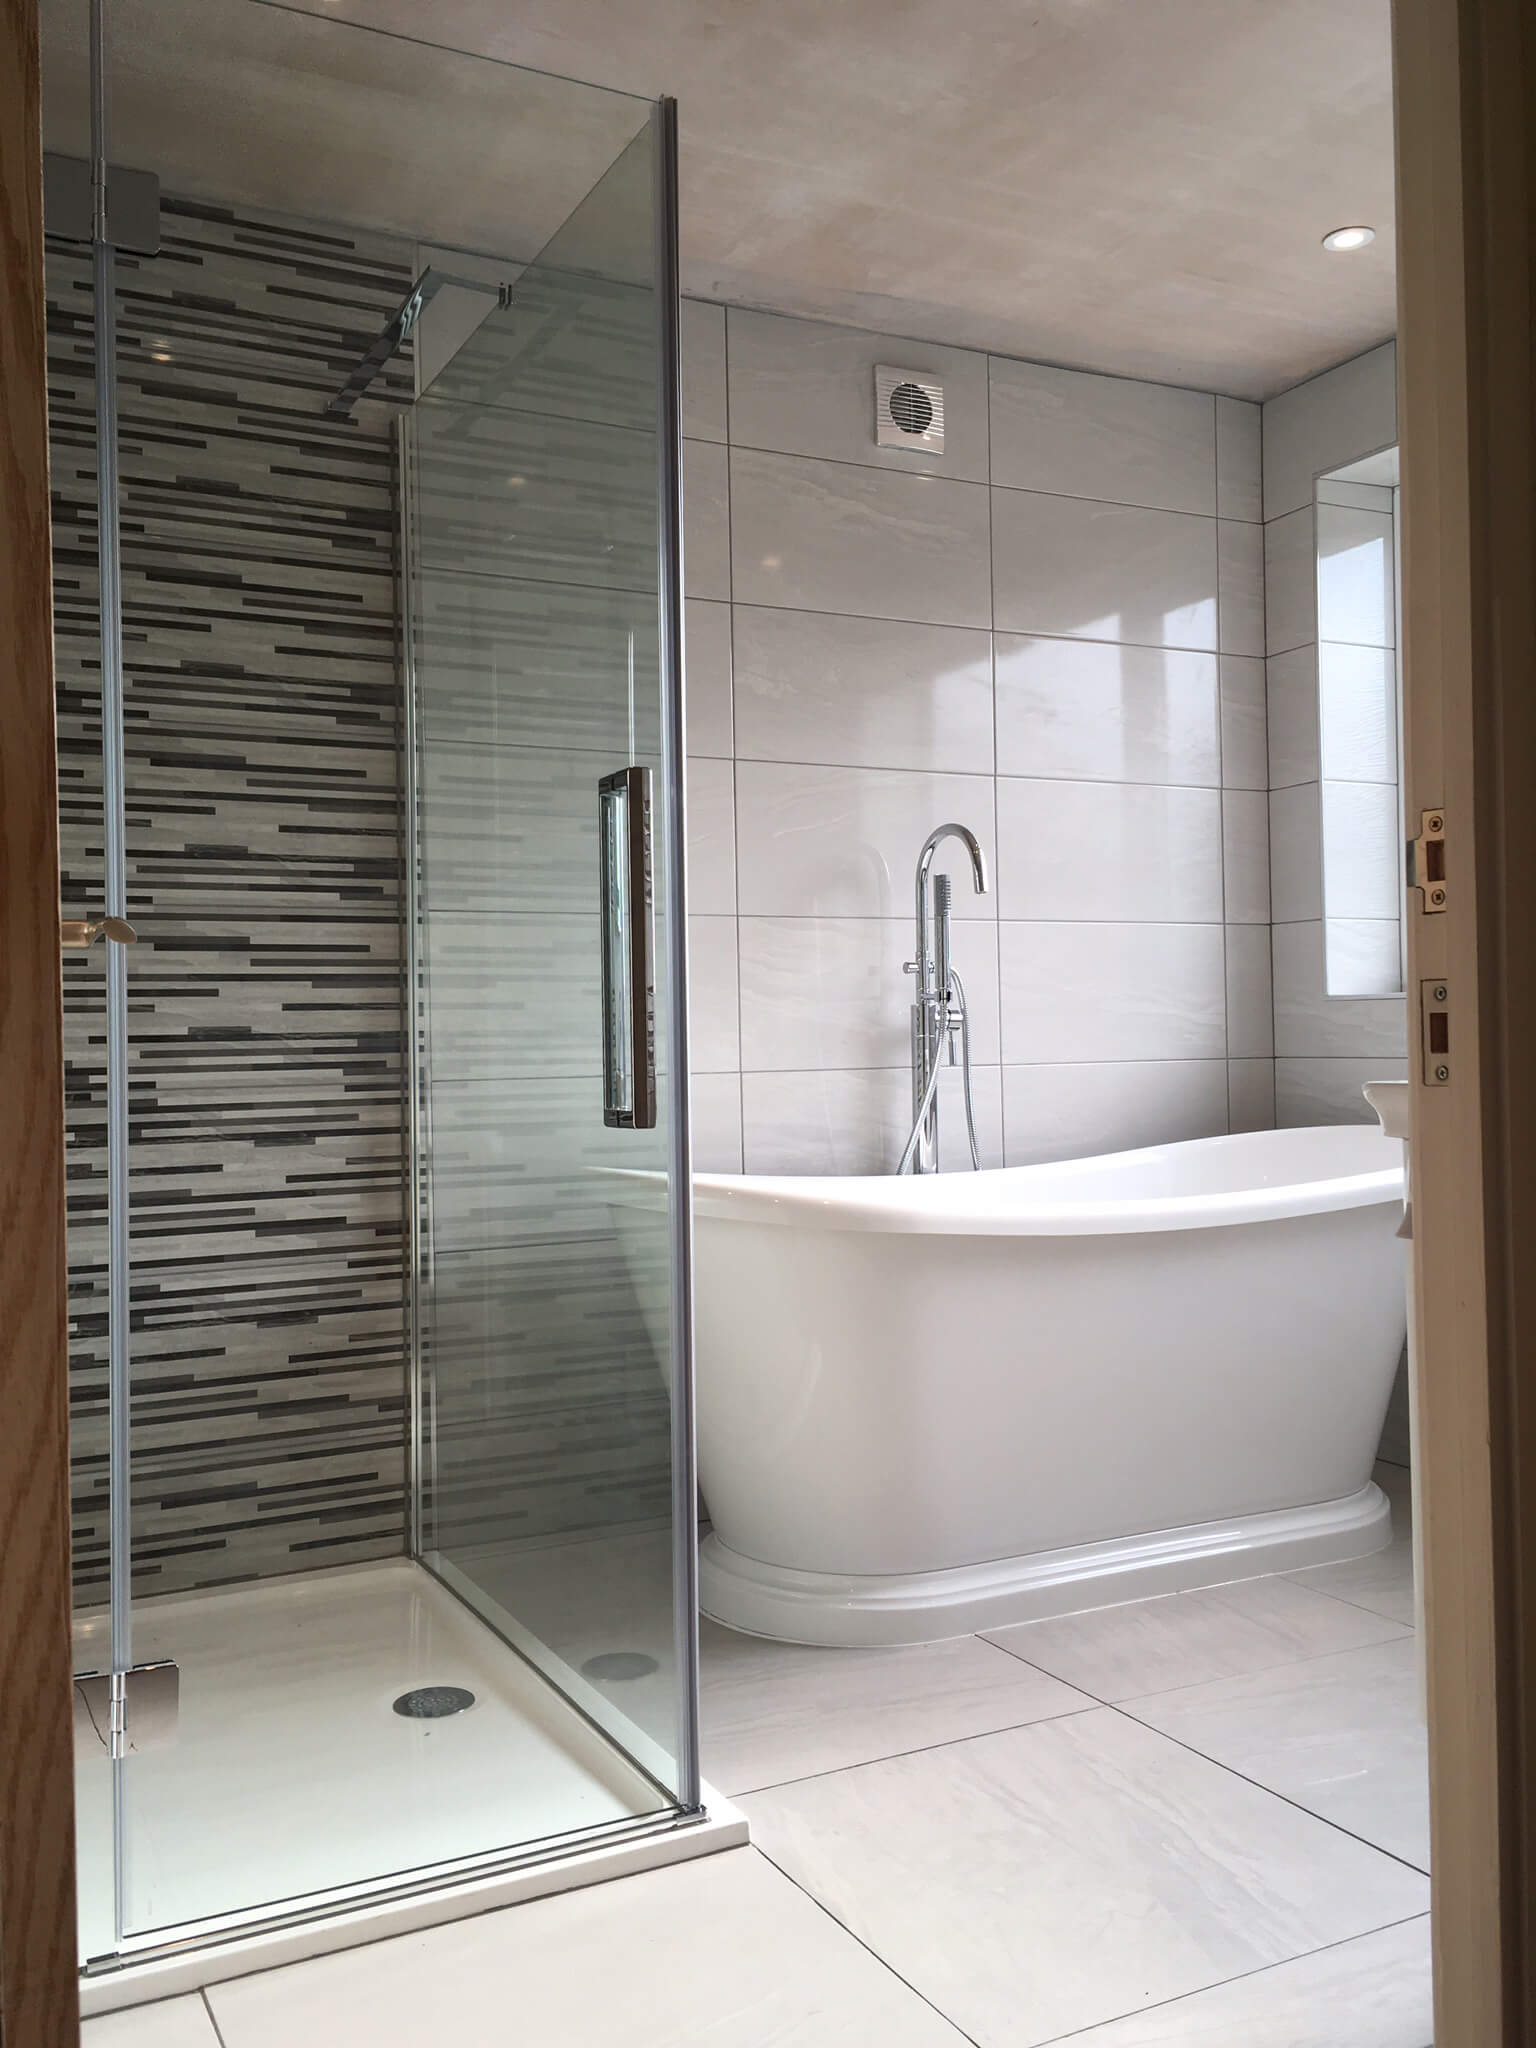 JLS Design & Build Joinery Manufacturer and Building Contractor in Coventry and Warwickshire Bathroom Suite